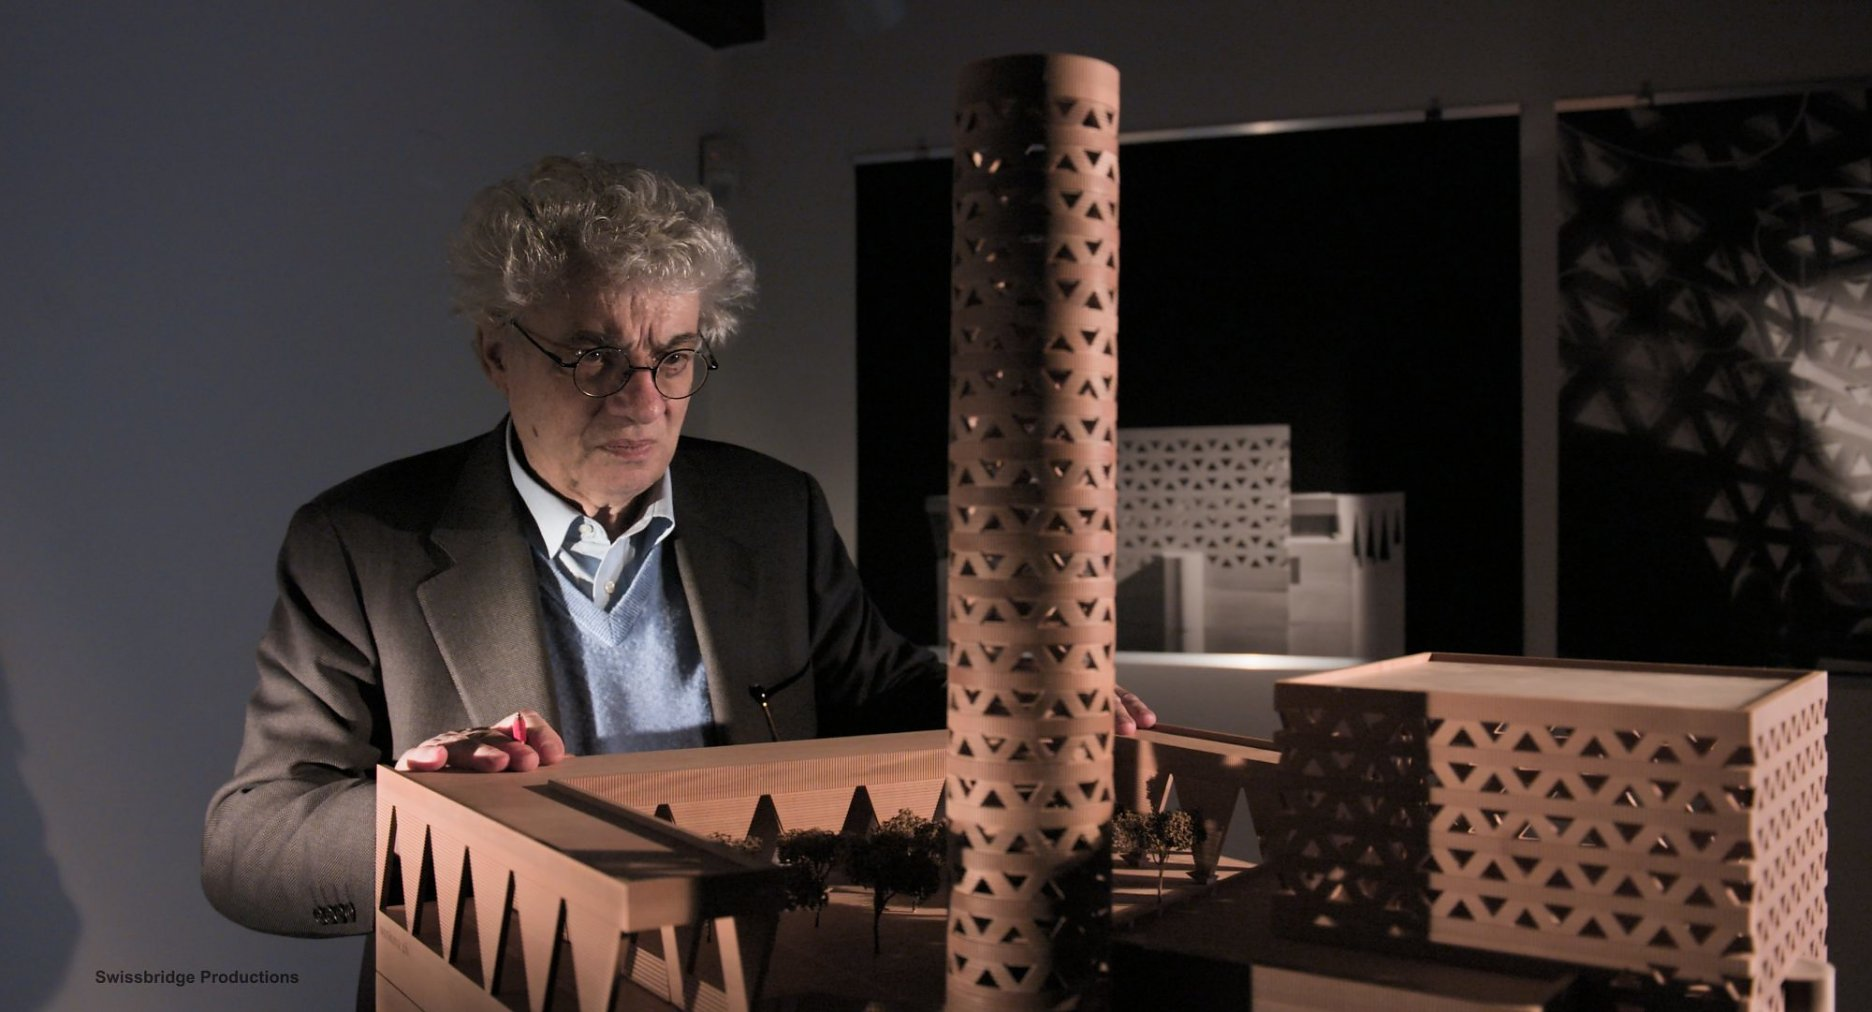 Mario Botta - The Space Beyond